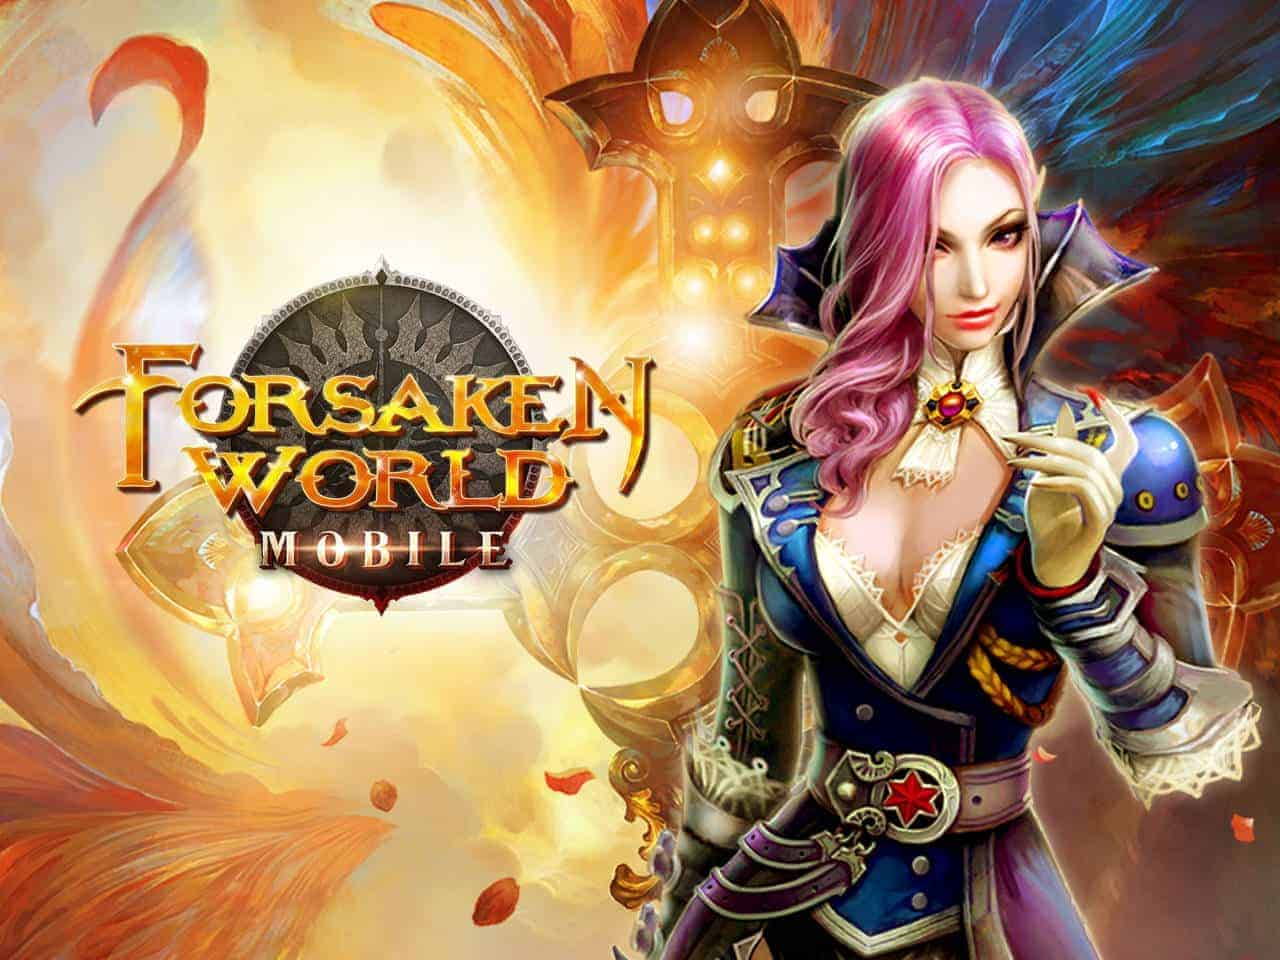 Forsaken World Mobile First To Use Google's Pre-Registration Feature